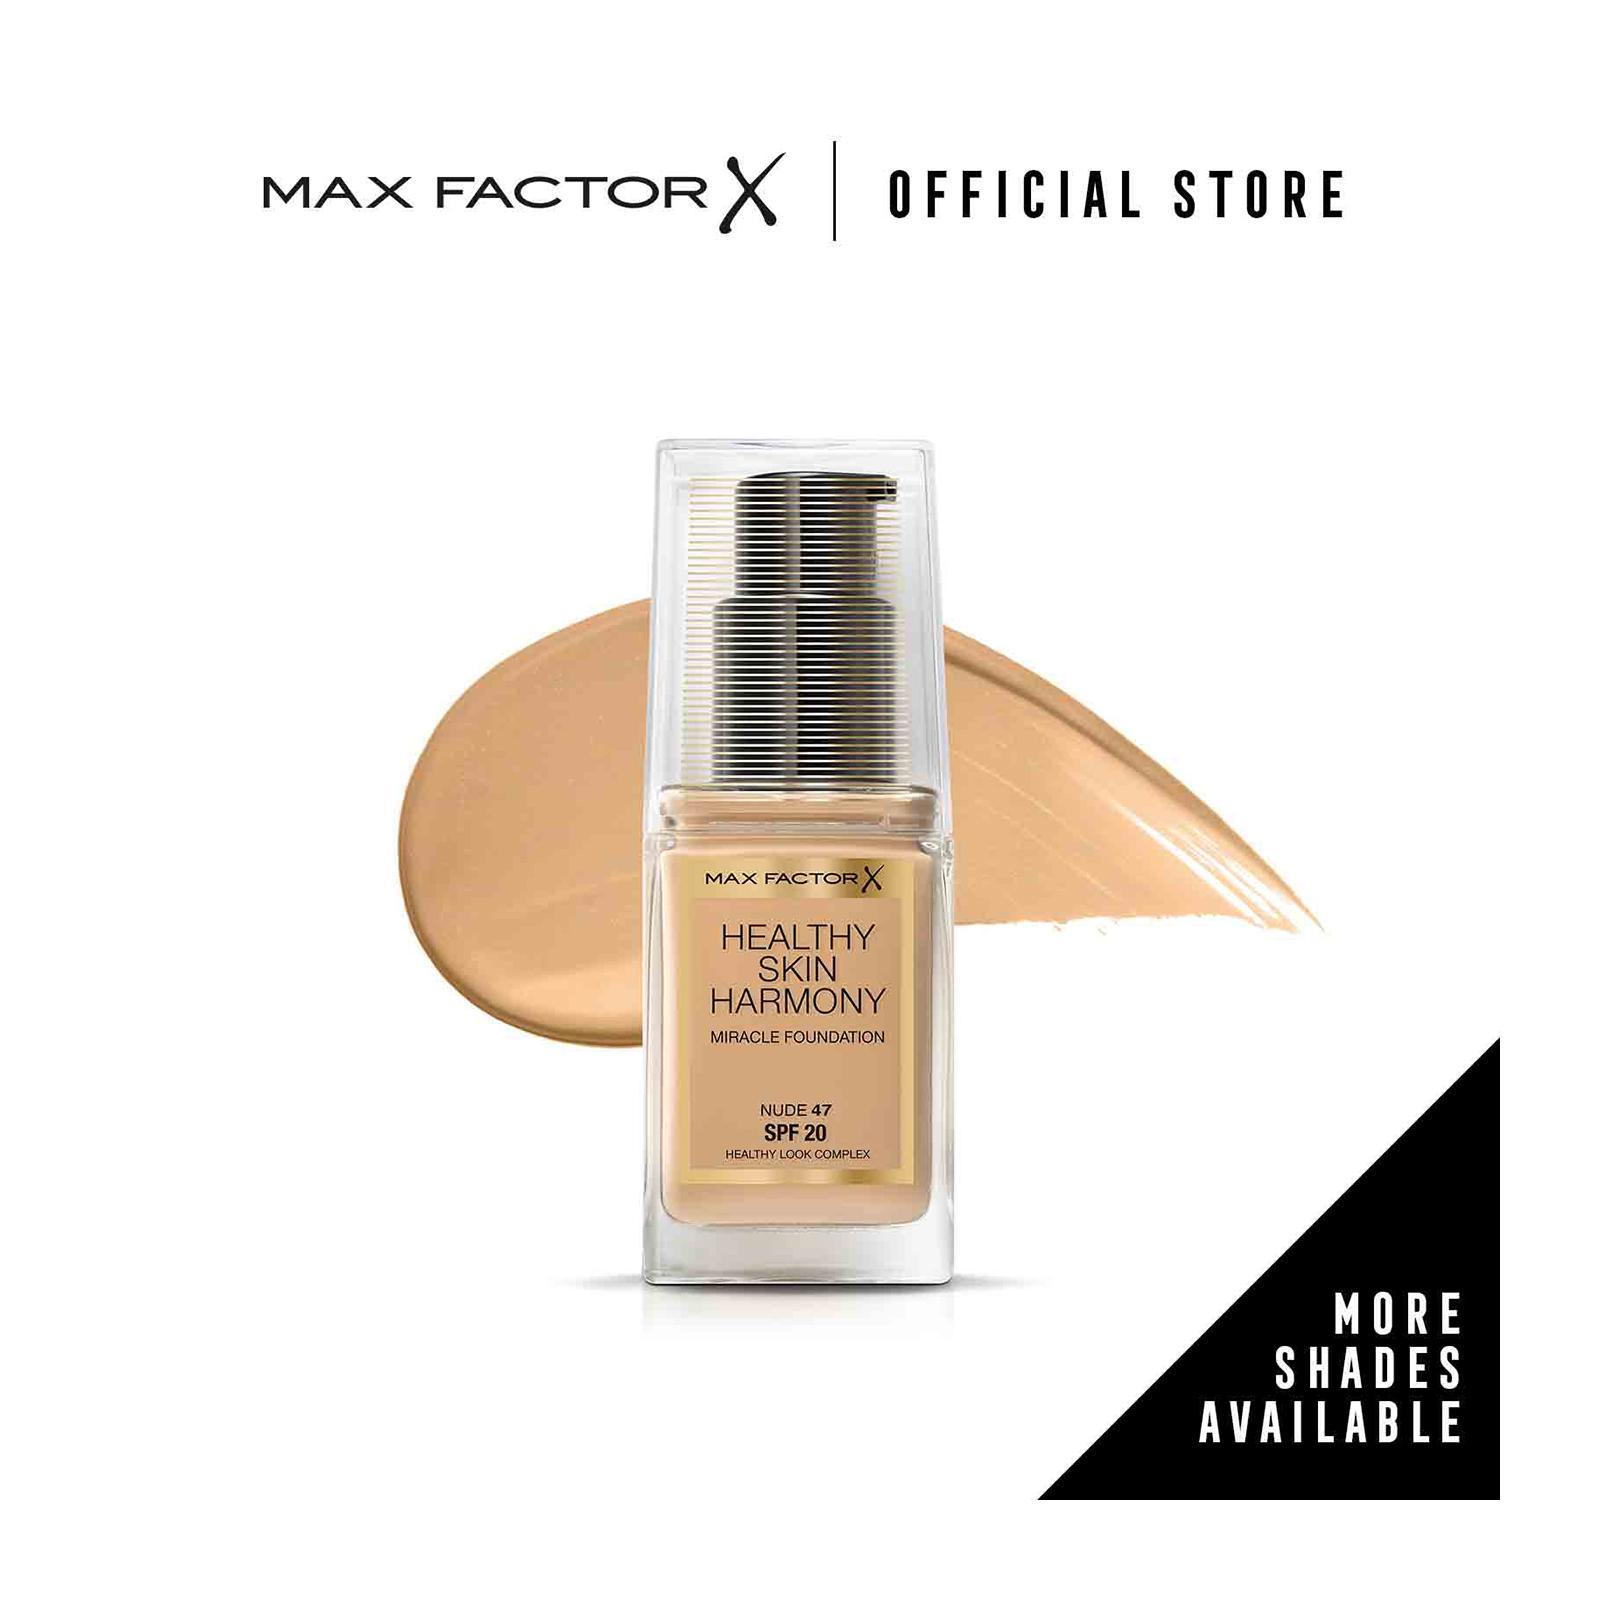 Max Factor Healthy Skin Harmony Miracle SPF 20 Foundation 47 Nude